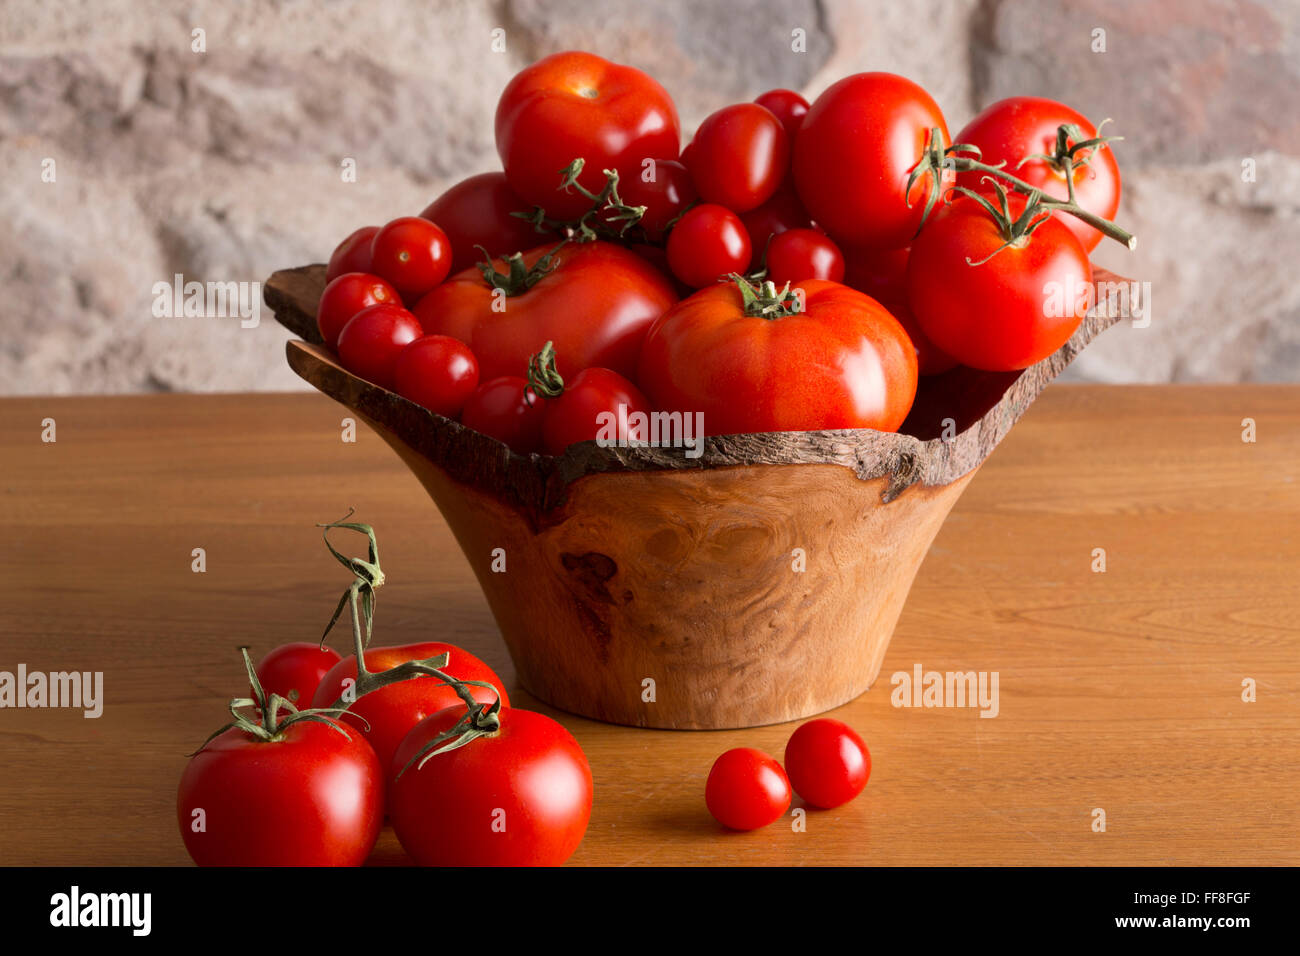 Big bowl of tomatoes sitting on a country kitchen table - Stock Image